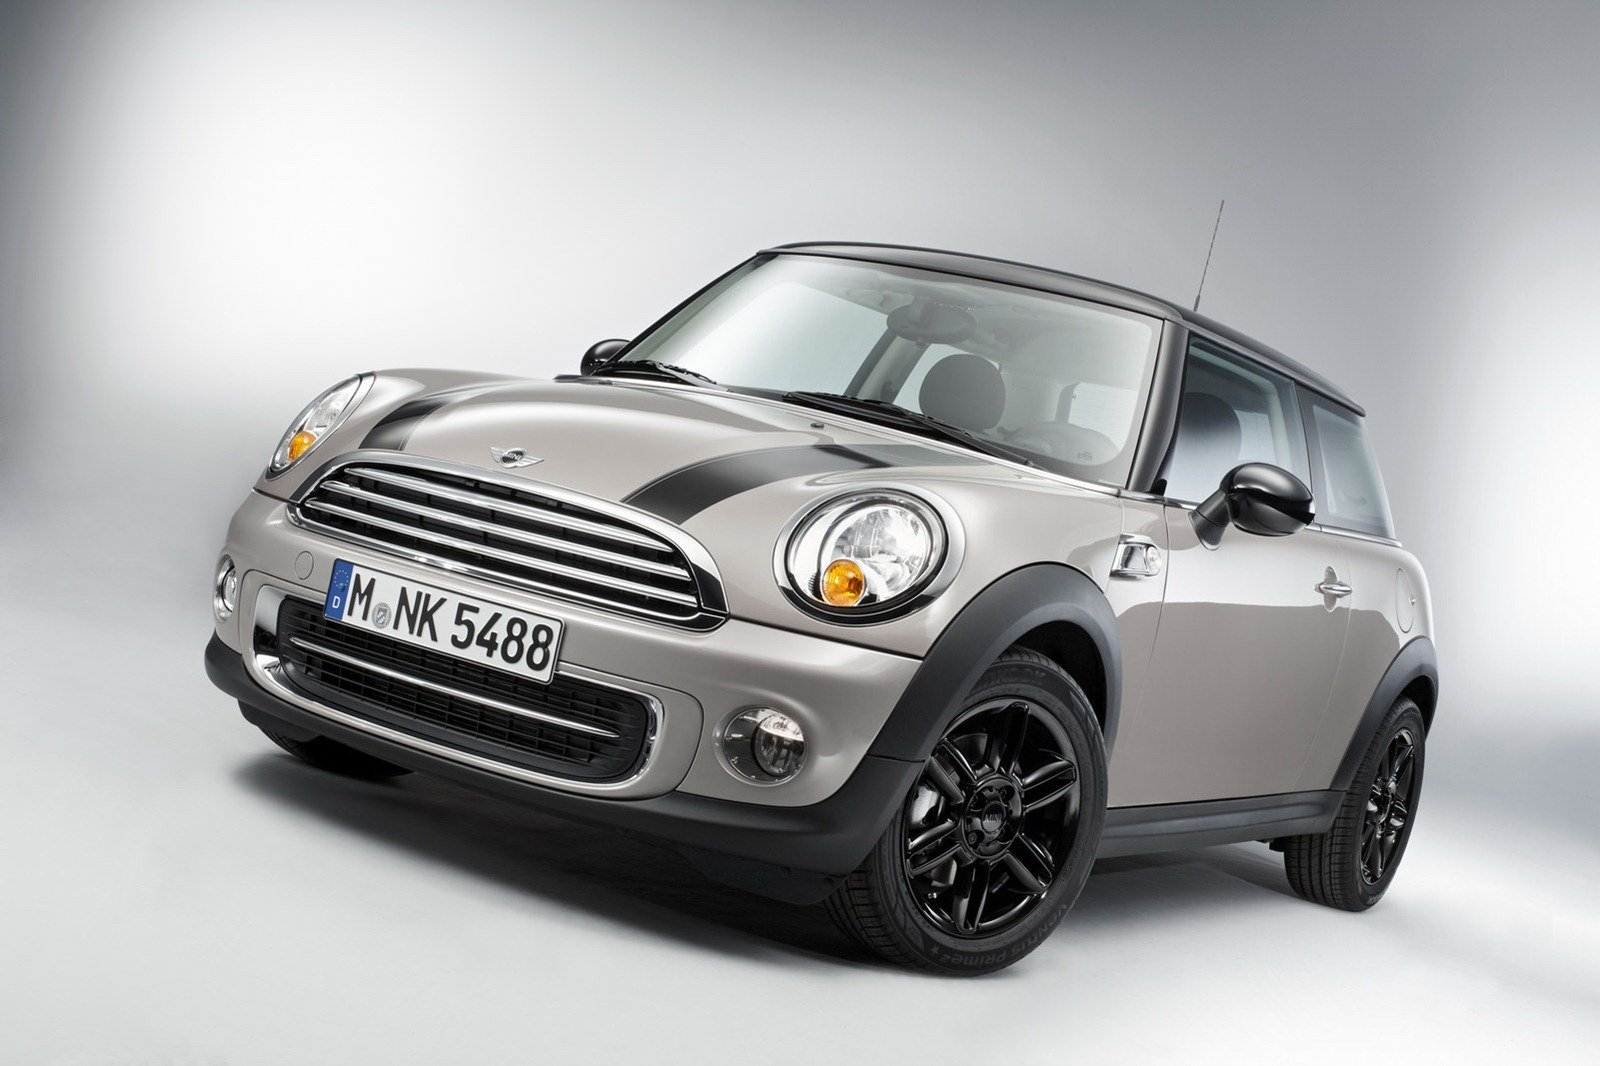 2012 mini cooper baker street special edition picture. Black Bedroom Furniture Sets. Home Design Ideas